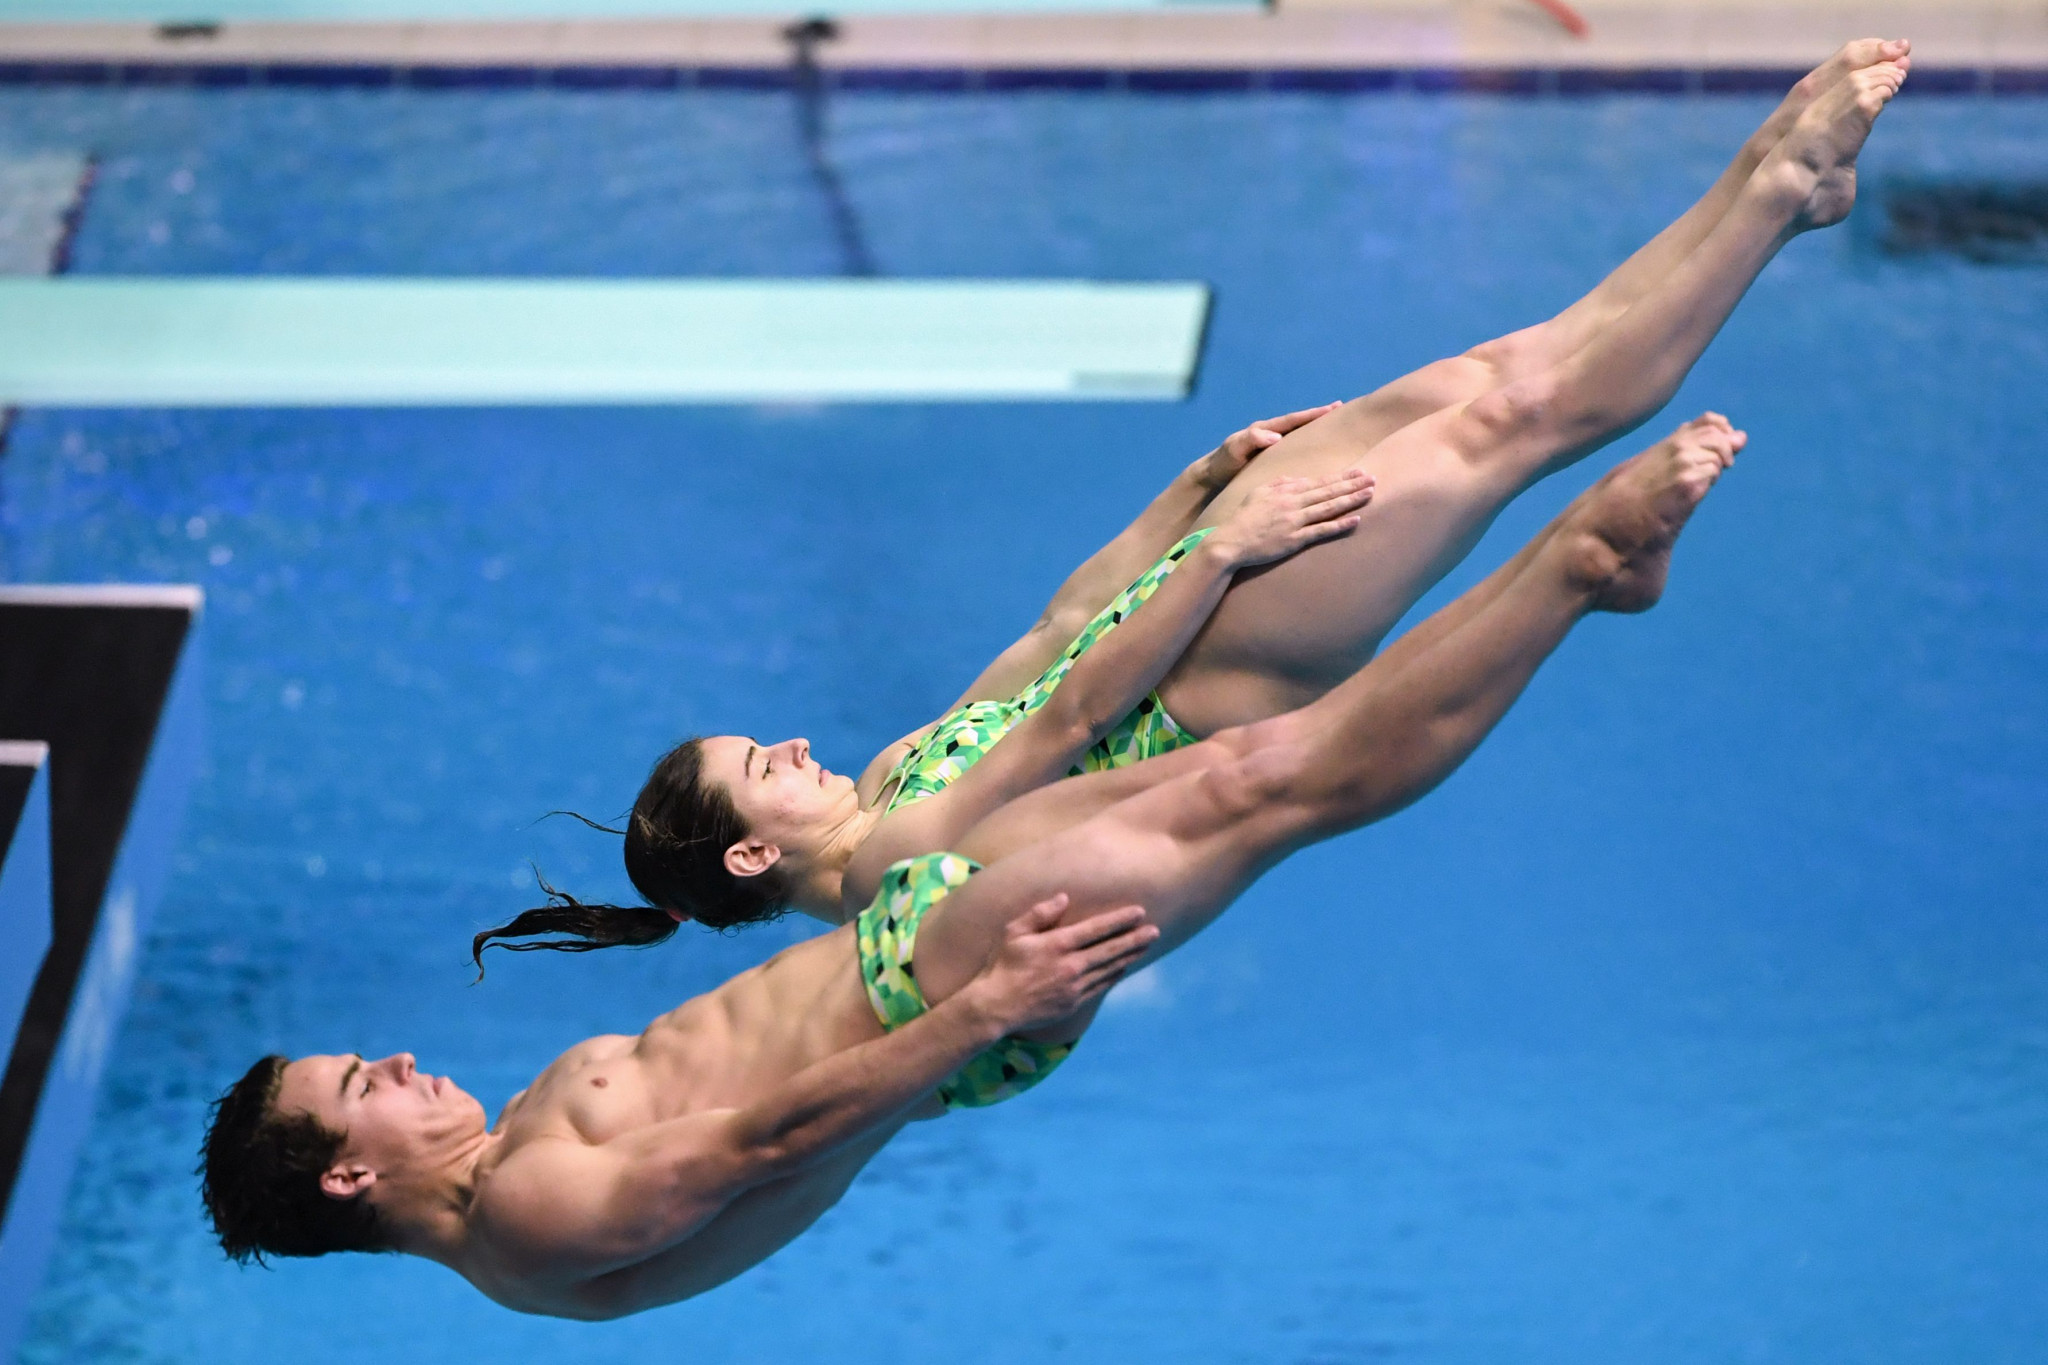 Australian duo Matthew Carter and Maddison Keeney had only been paired together two hours before winning their mixed 3m synchro springboard World Championship title ©Getty Images